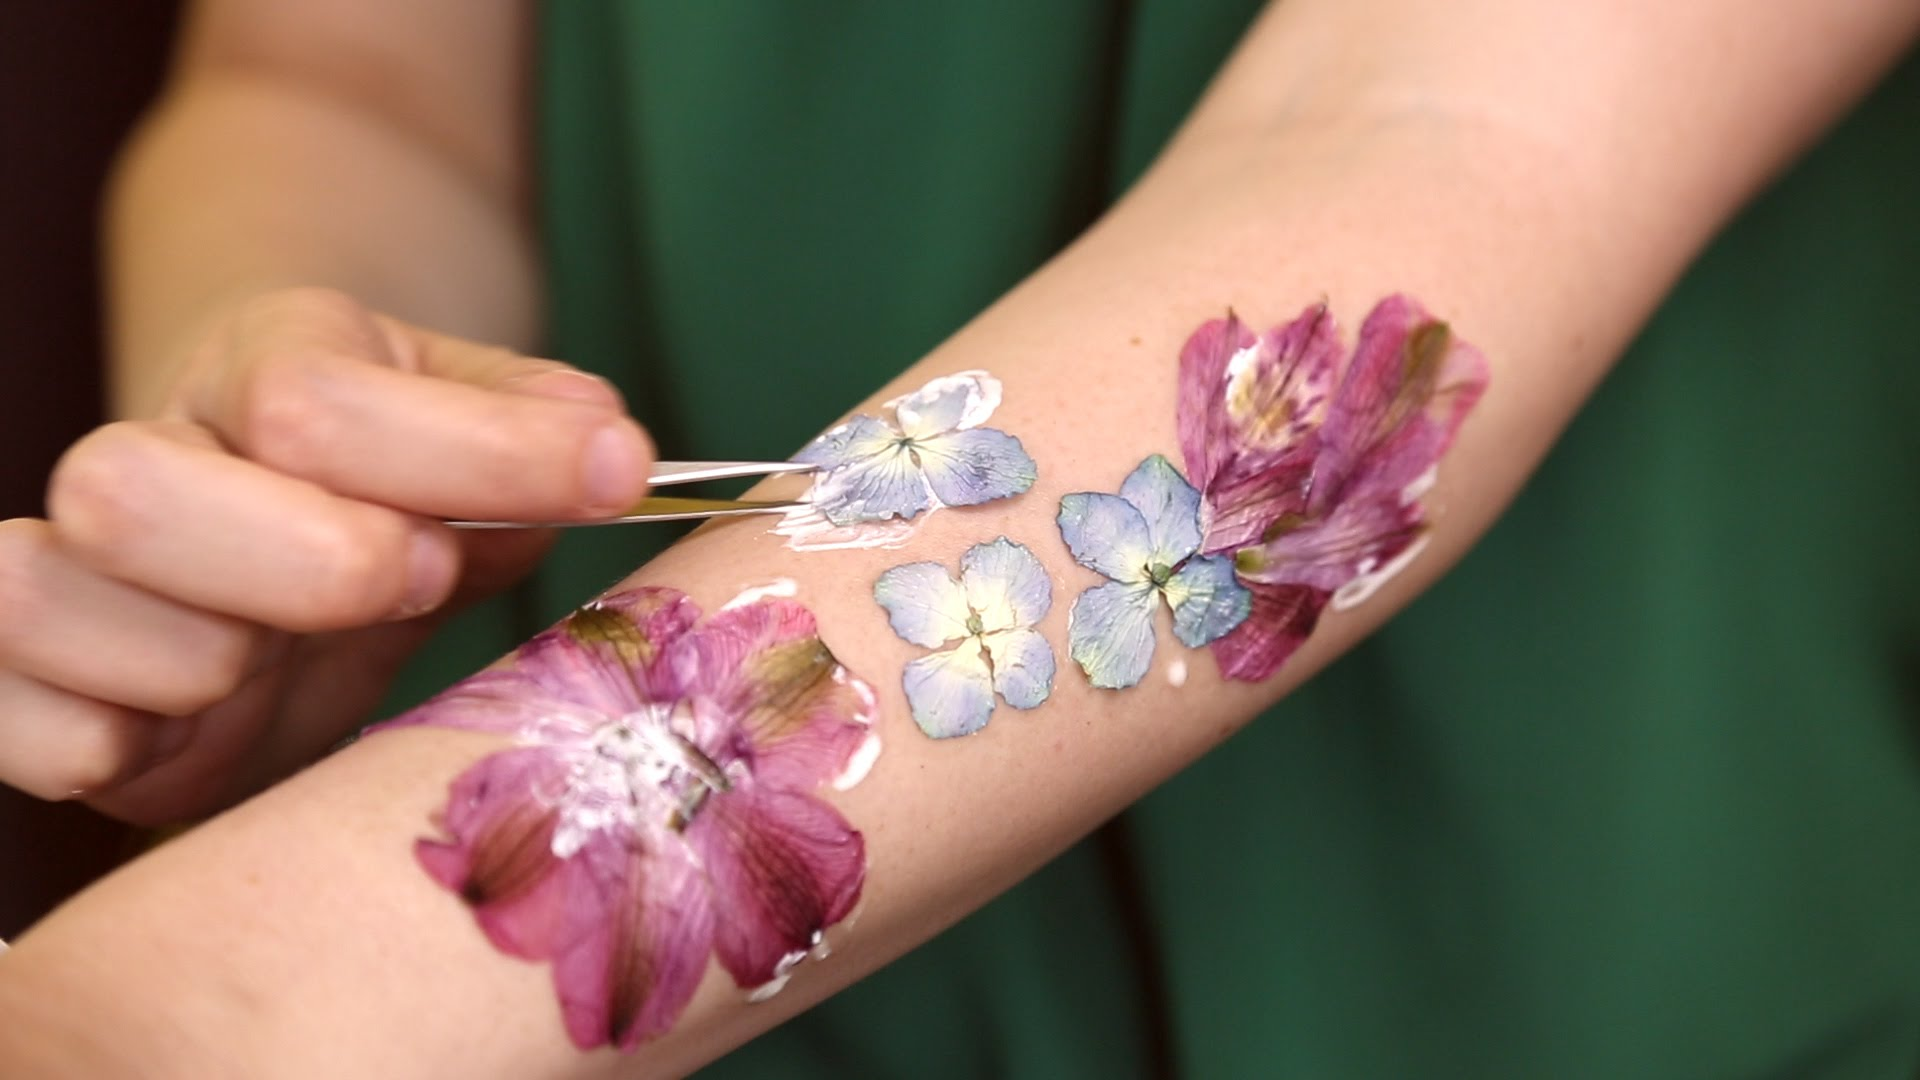 Flowers on skin photo